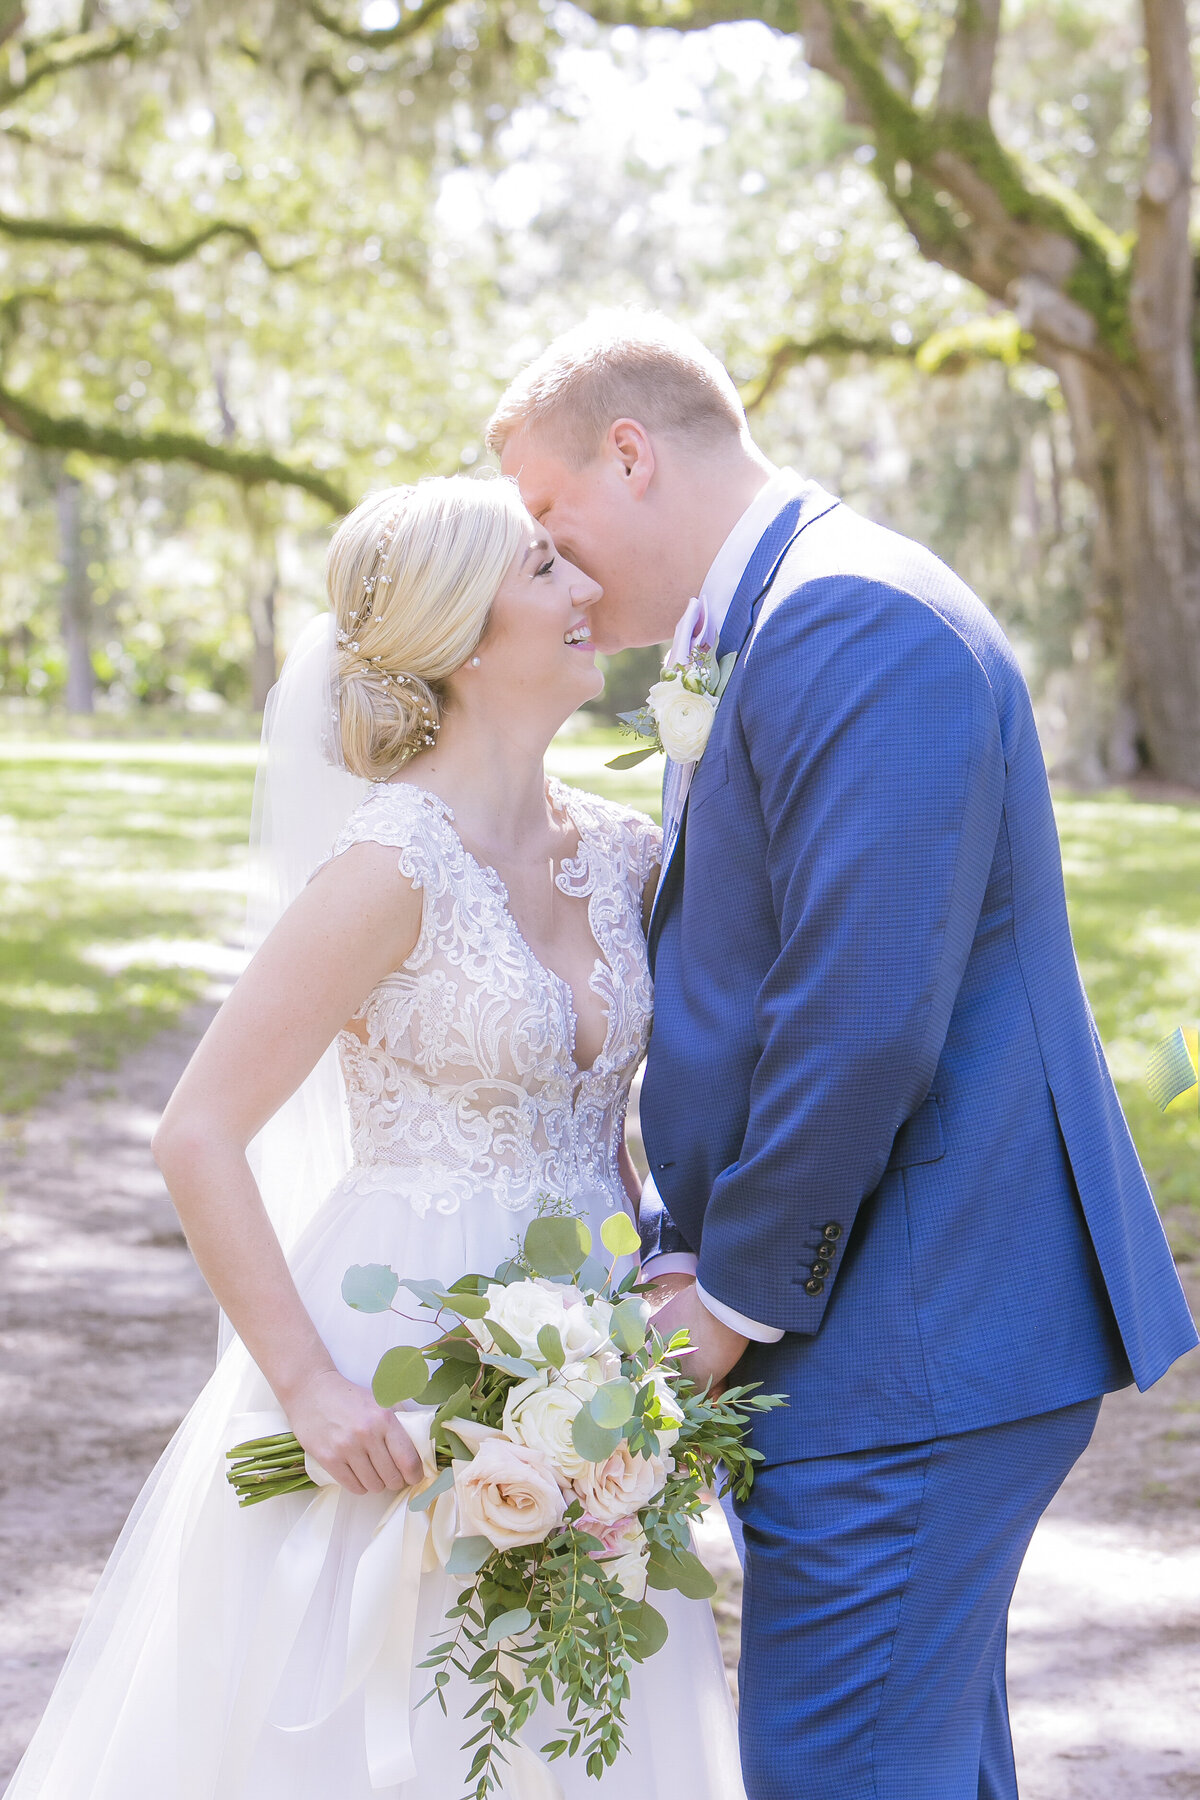 Lisa-Staff-Photography- Wedding-Photographer-Sea Pines-1119